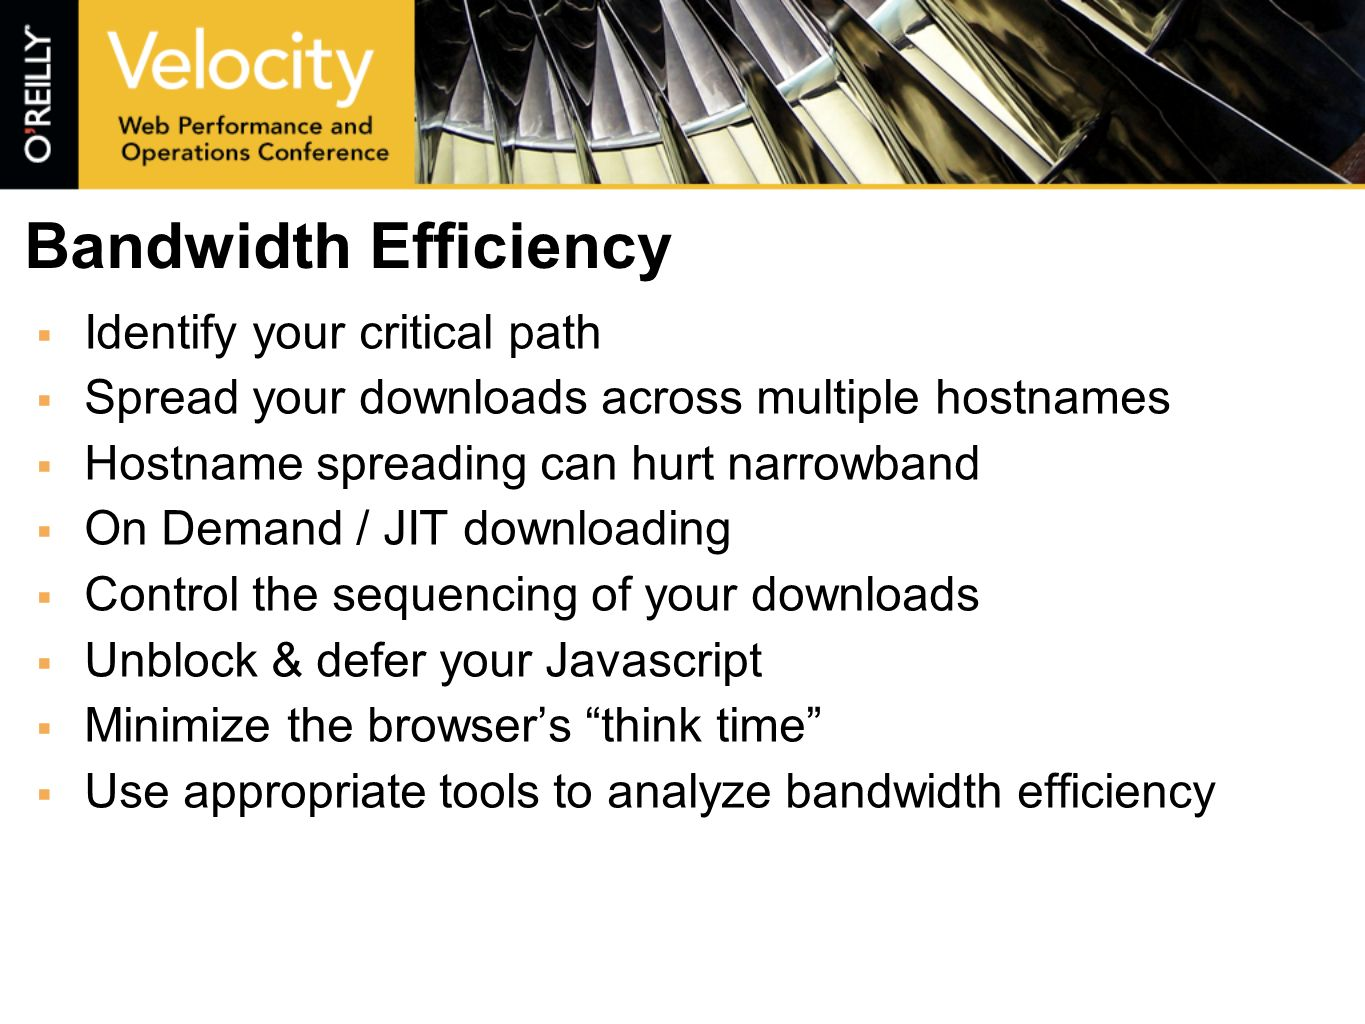 Bandwidth Efficiency Identify your critical path Spread your downloads across multiple hostnames Hostname spreading can hurt narrowband On Demand / JIT downloading Control the sequencing of your downloads Unblock & defer your Javascript Minimize the browsers think time Use appropriate tools to analyze bandwidth efficiency